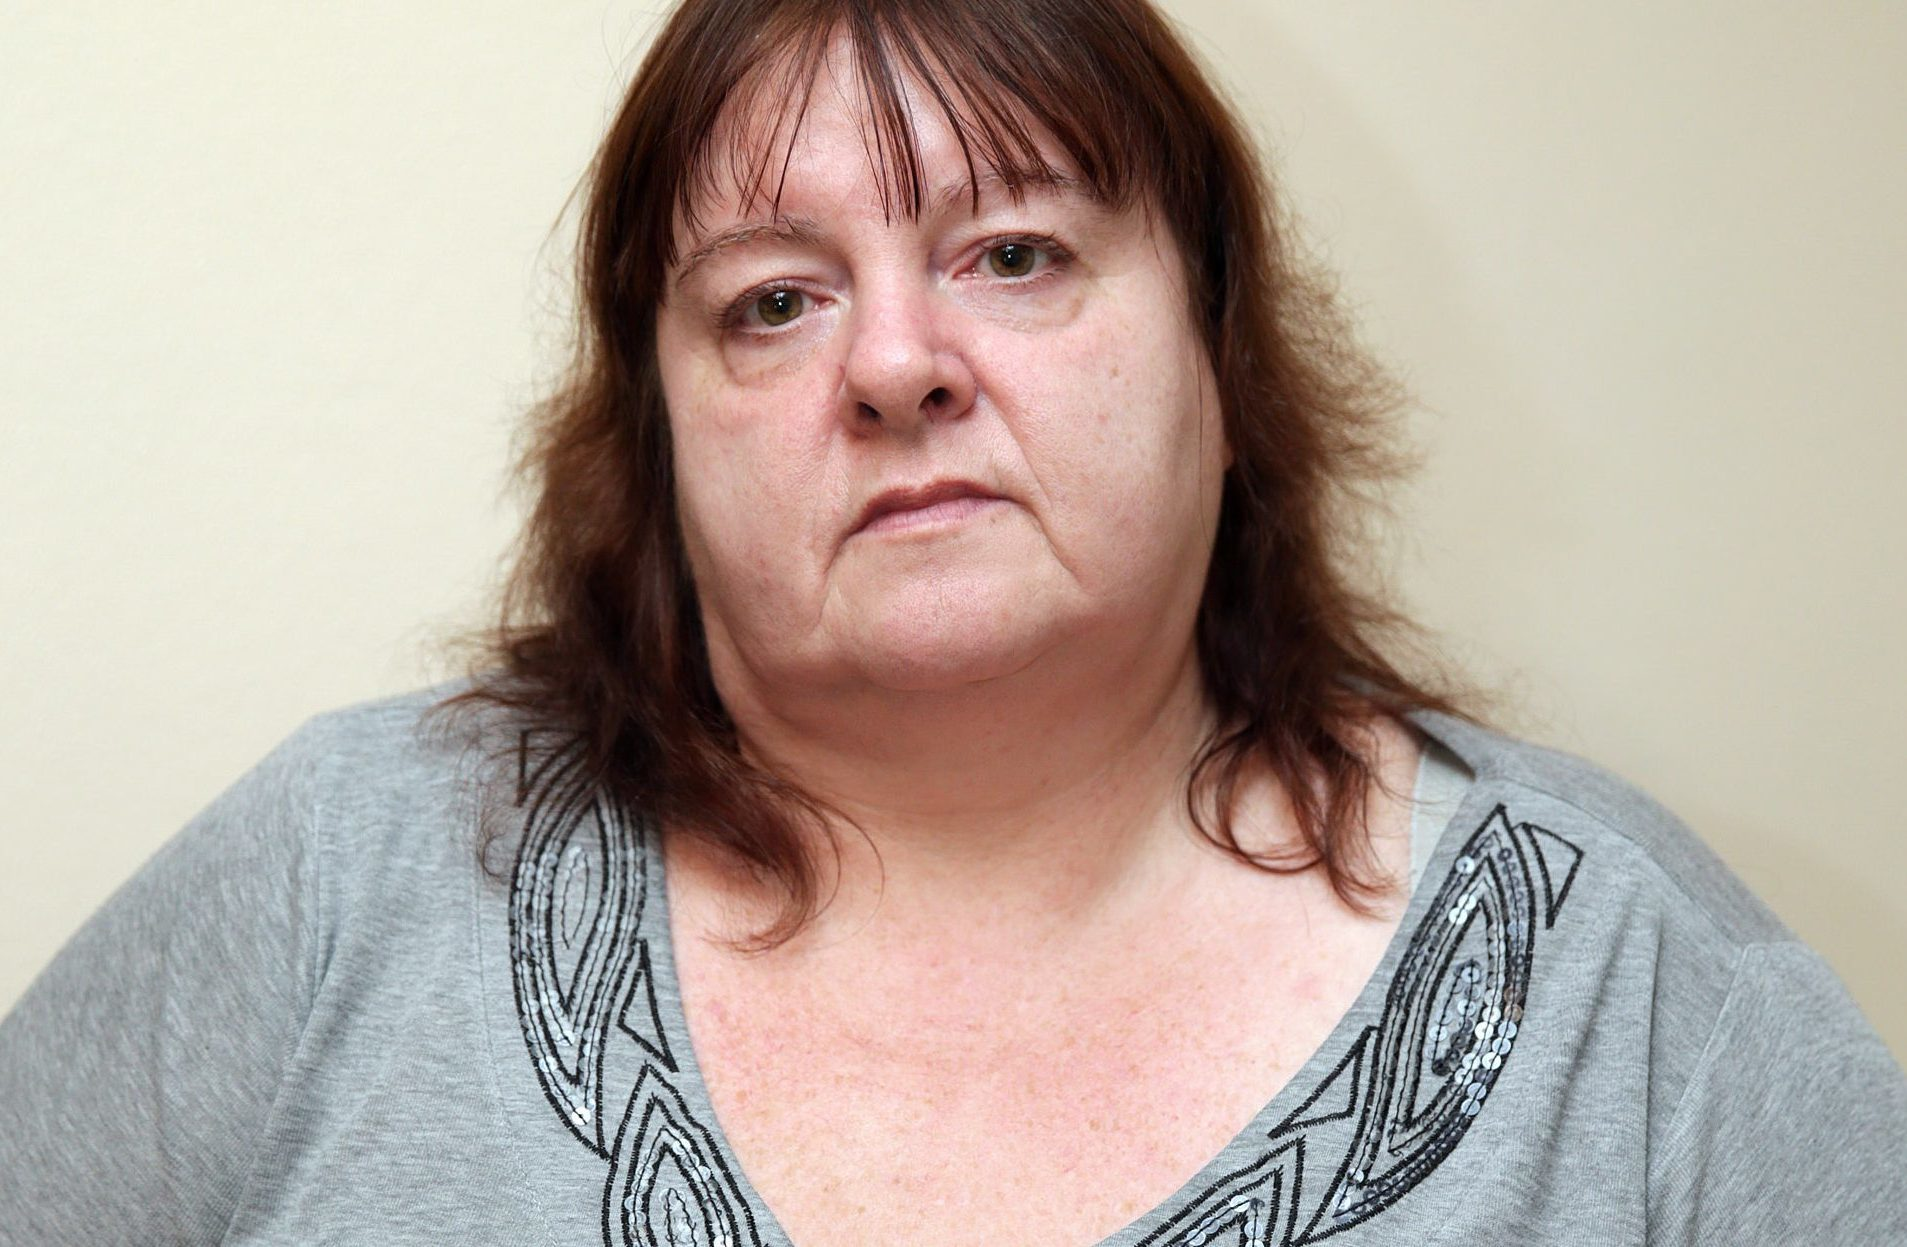 Yvonne Heath has vowed to fight on to get the truth behind her son's death at Deepcut.